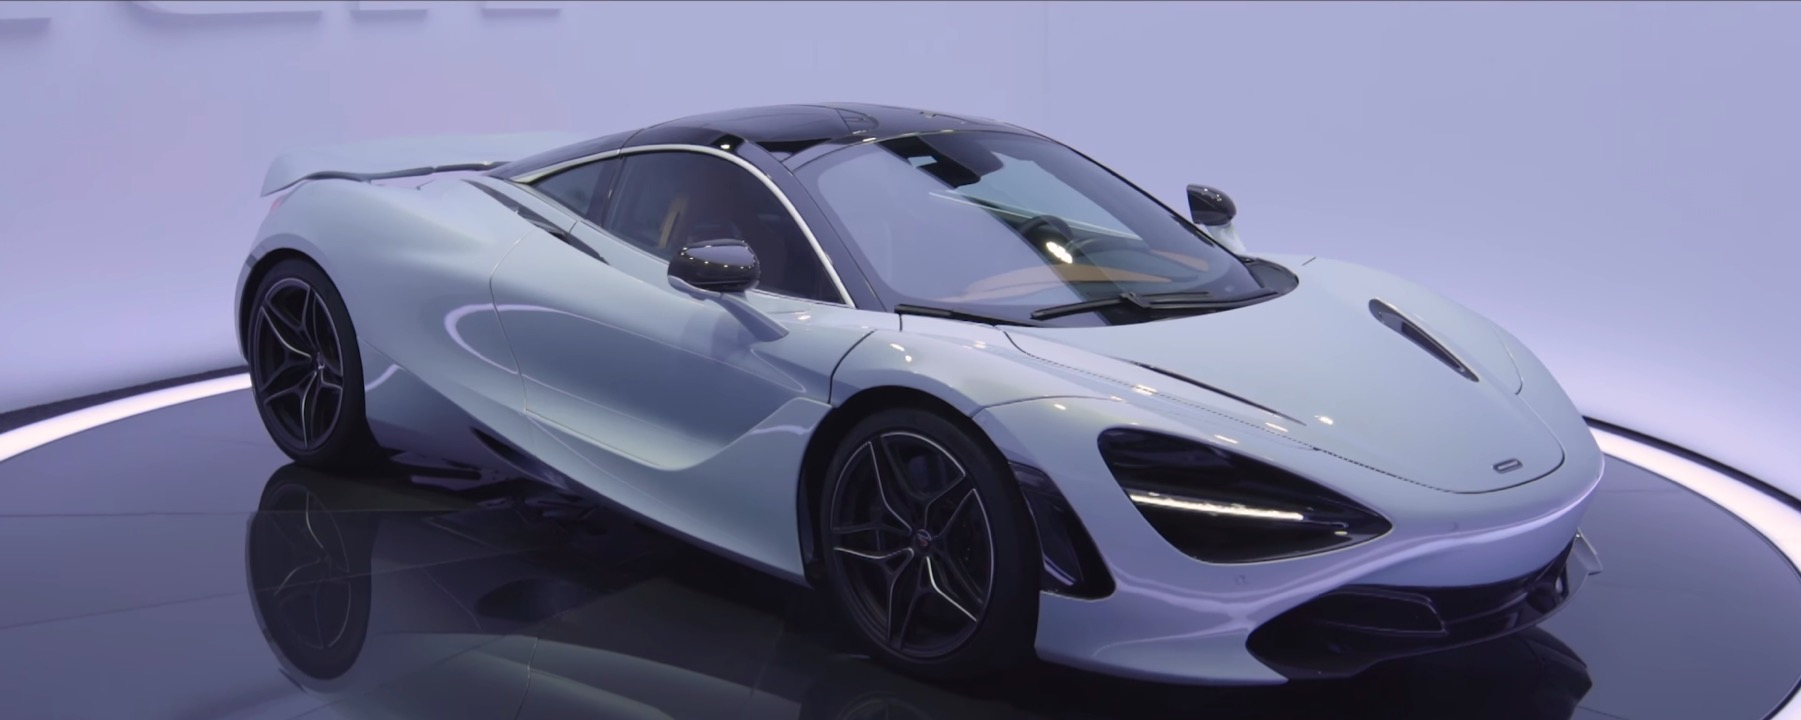 Bmw Of Houston >> The McLaren 720S - indiGO Auto Group Blog